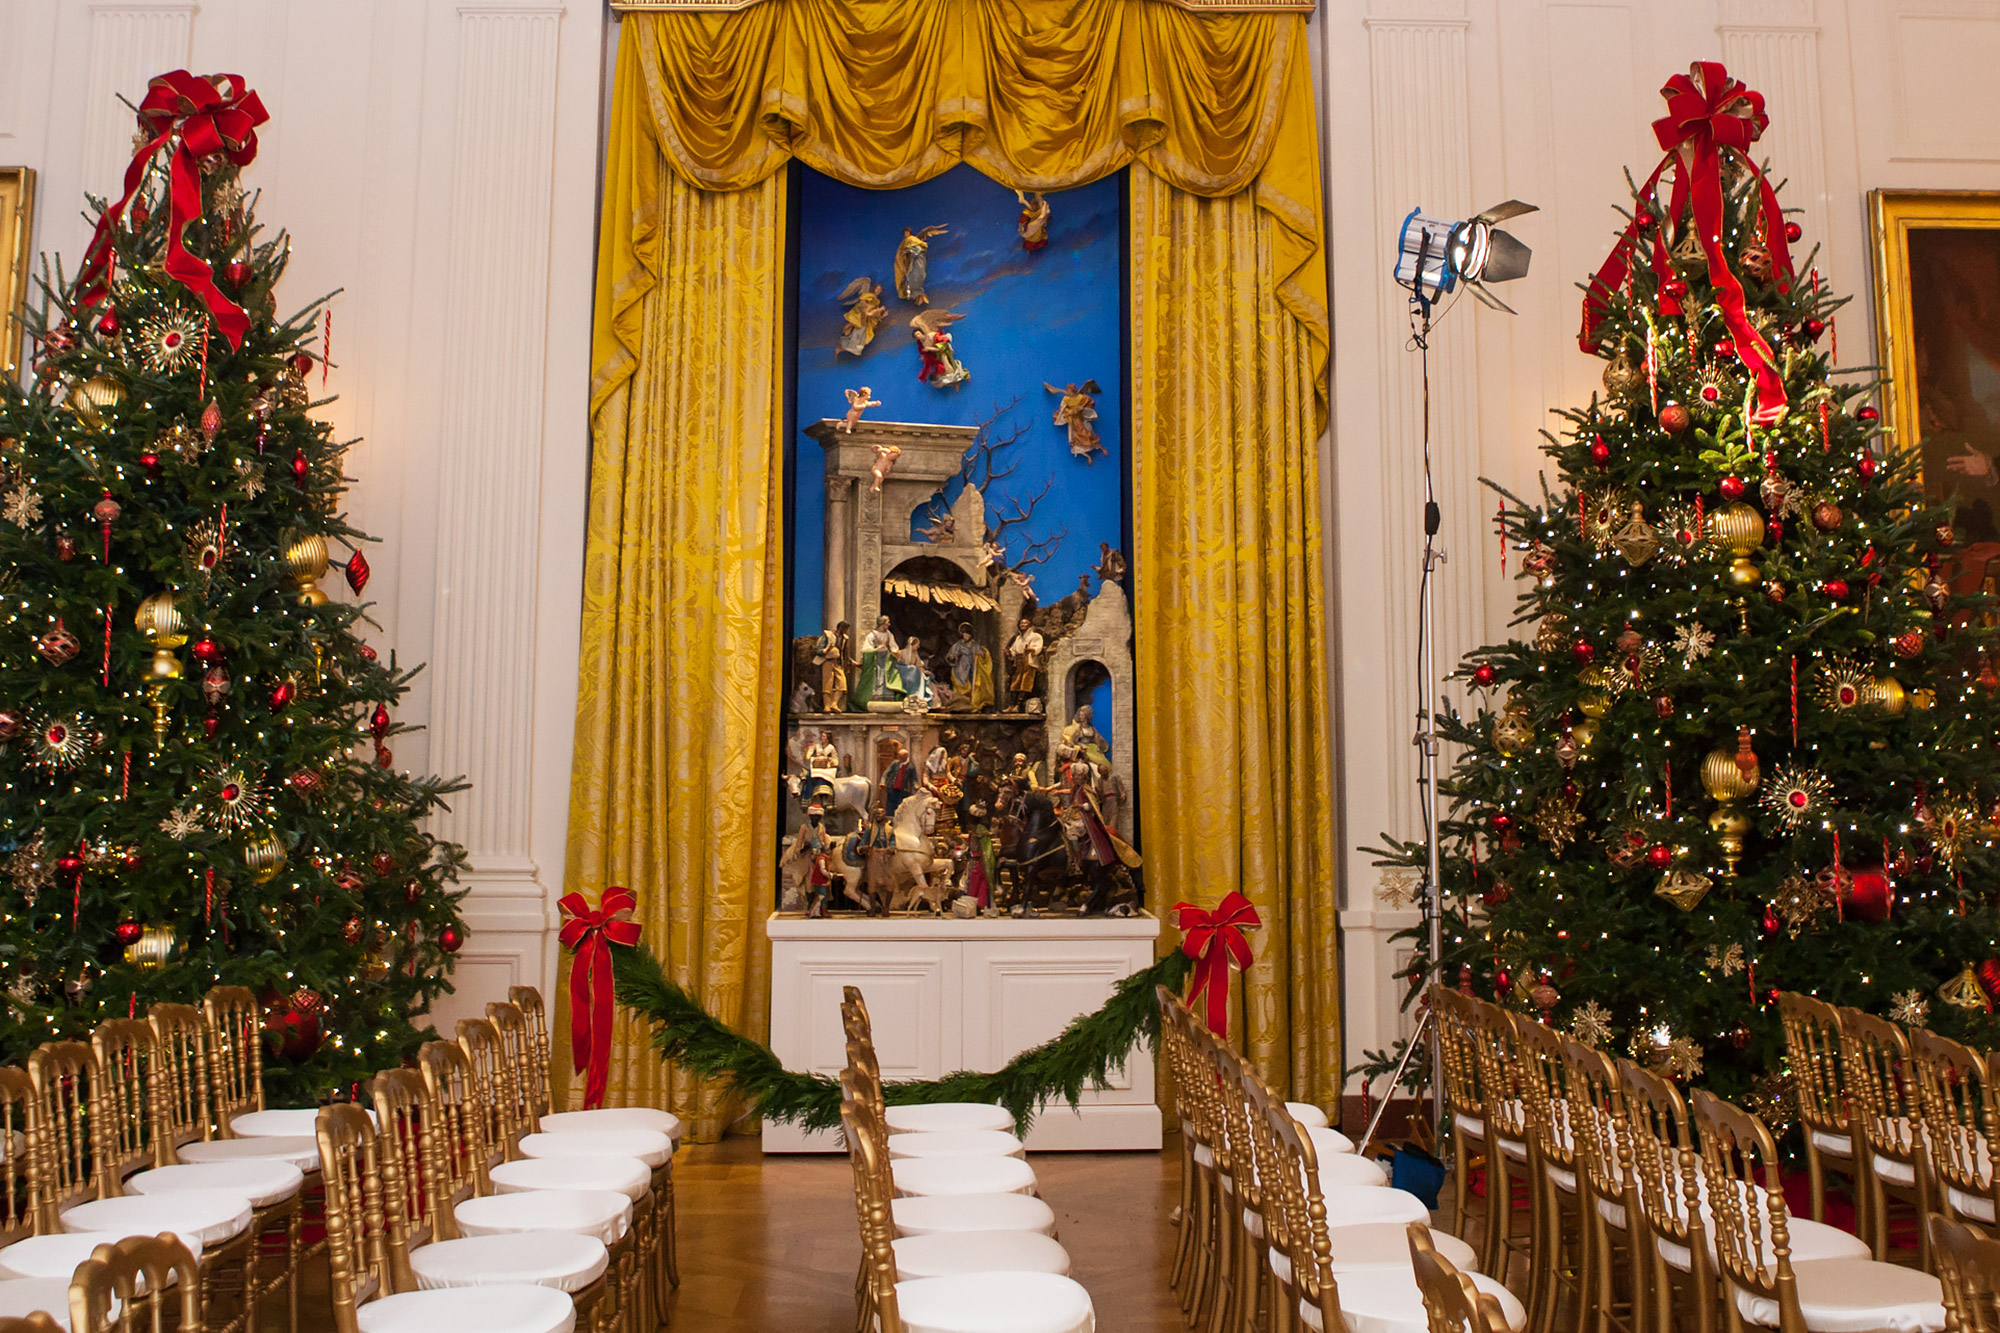 The White House Is Decorated For The 2016 Holiday Season